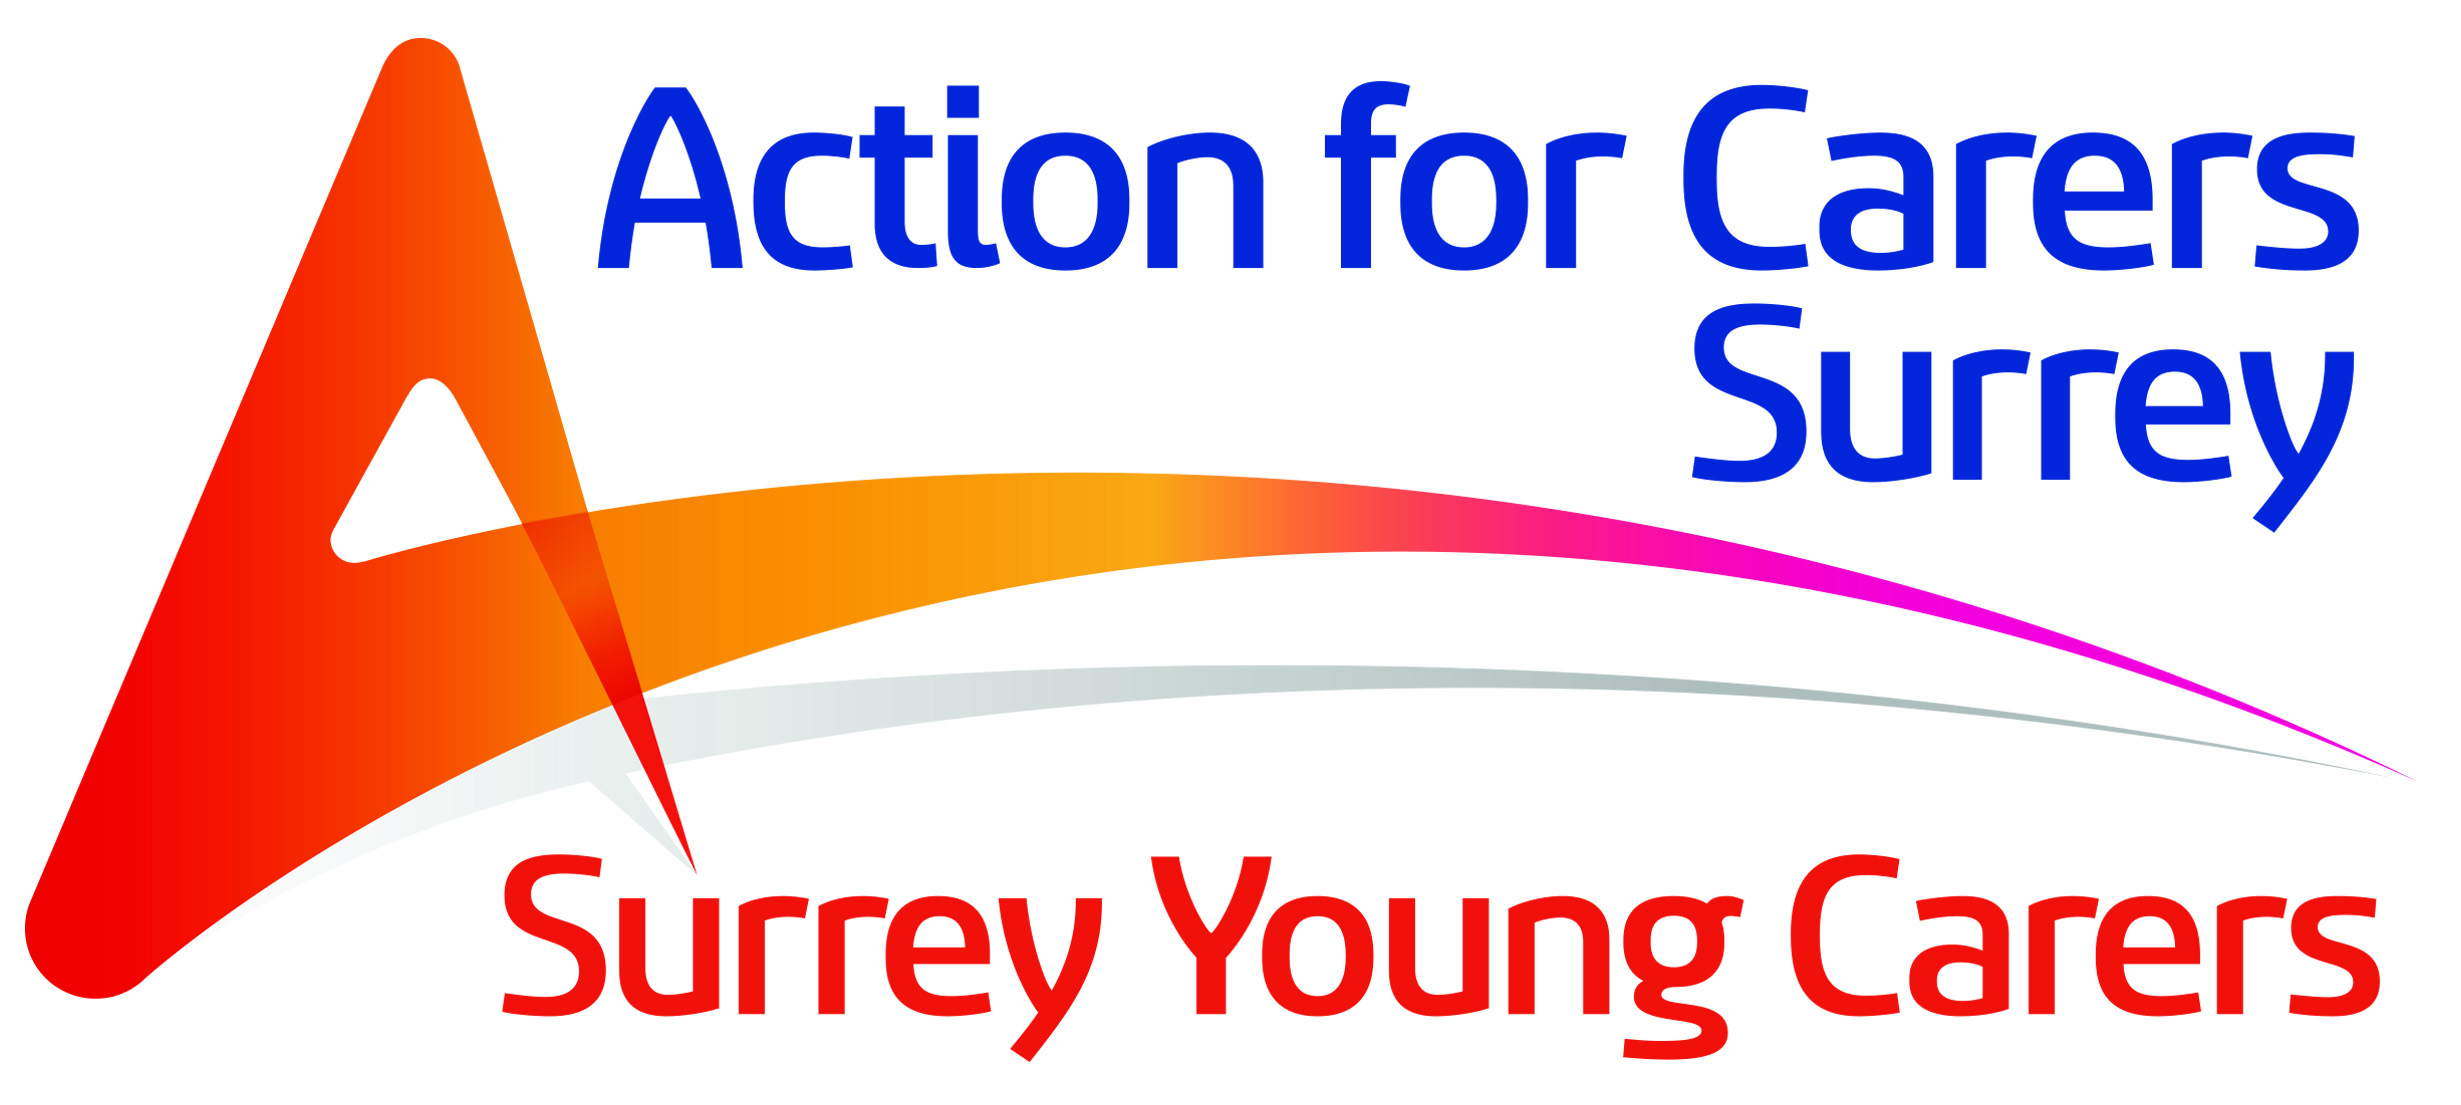 Surrey Young Carers